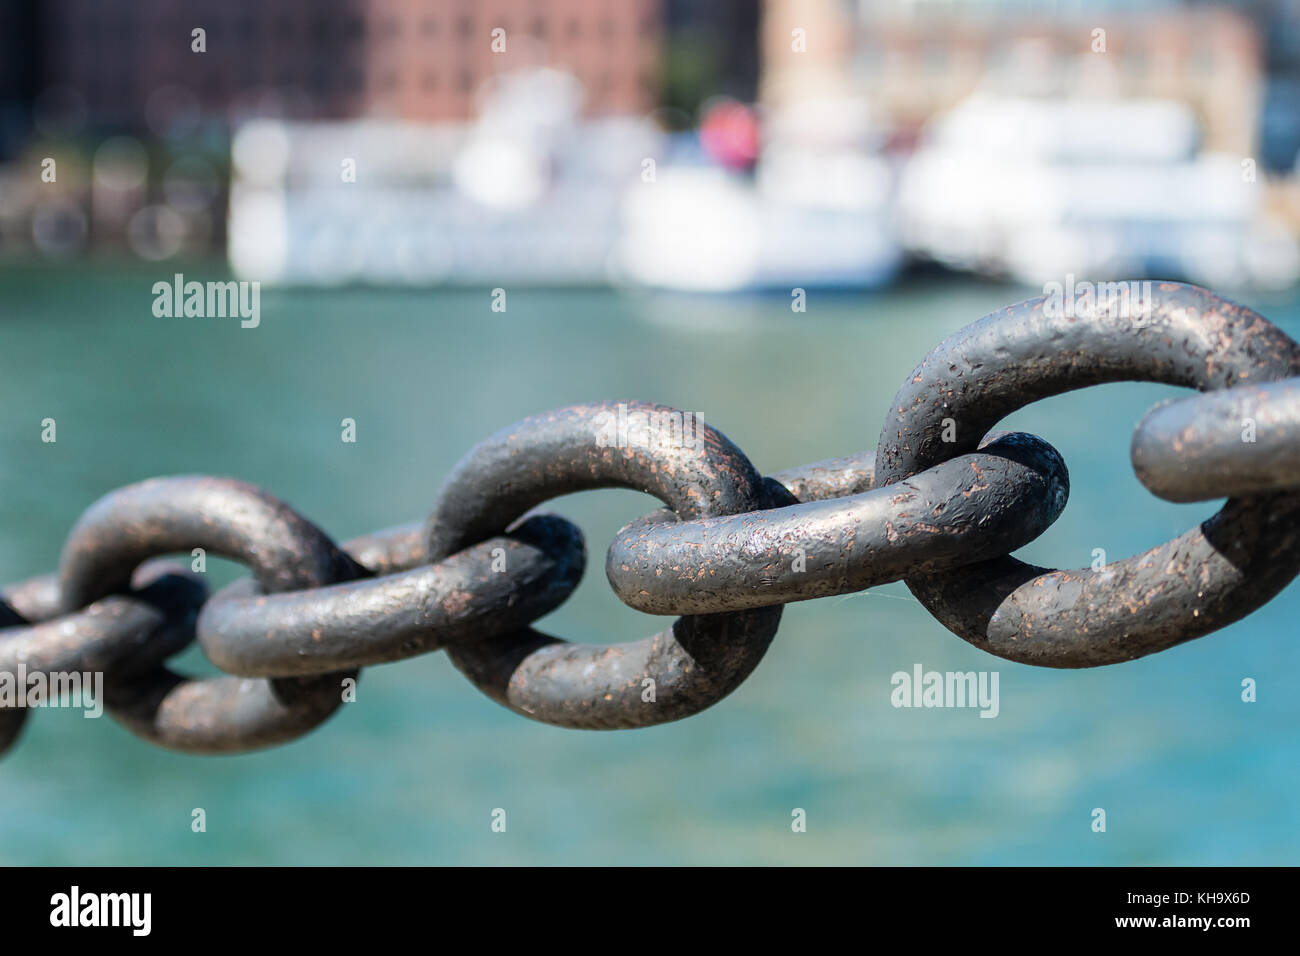 Five Links in Iron Chain hanging in front of water - Stock Image